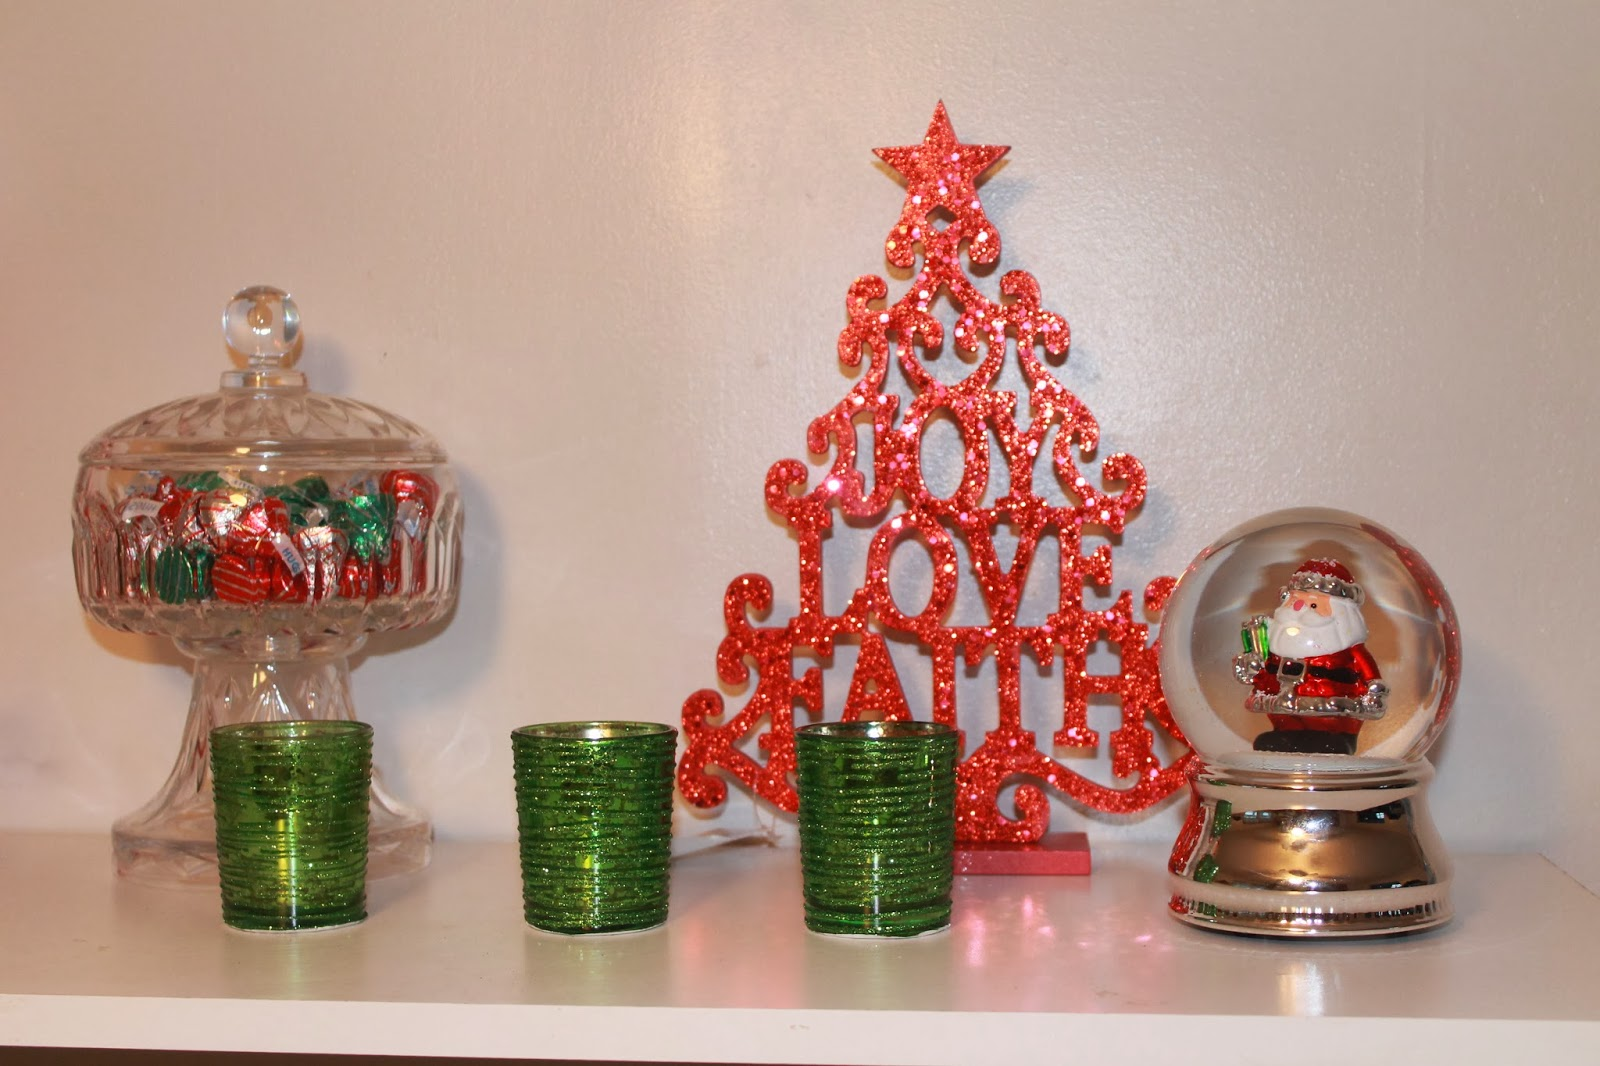 hobby lobby holiday shopping haul christmas decorations sale - Hobby Lobby Christmas Tree Sale